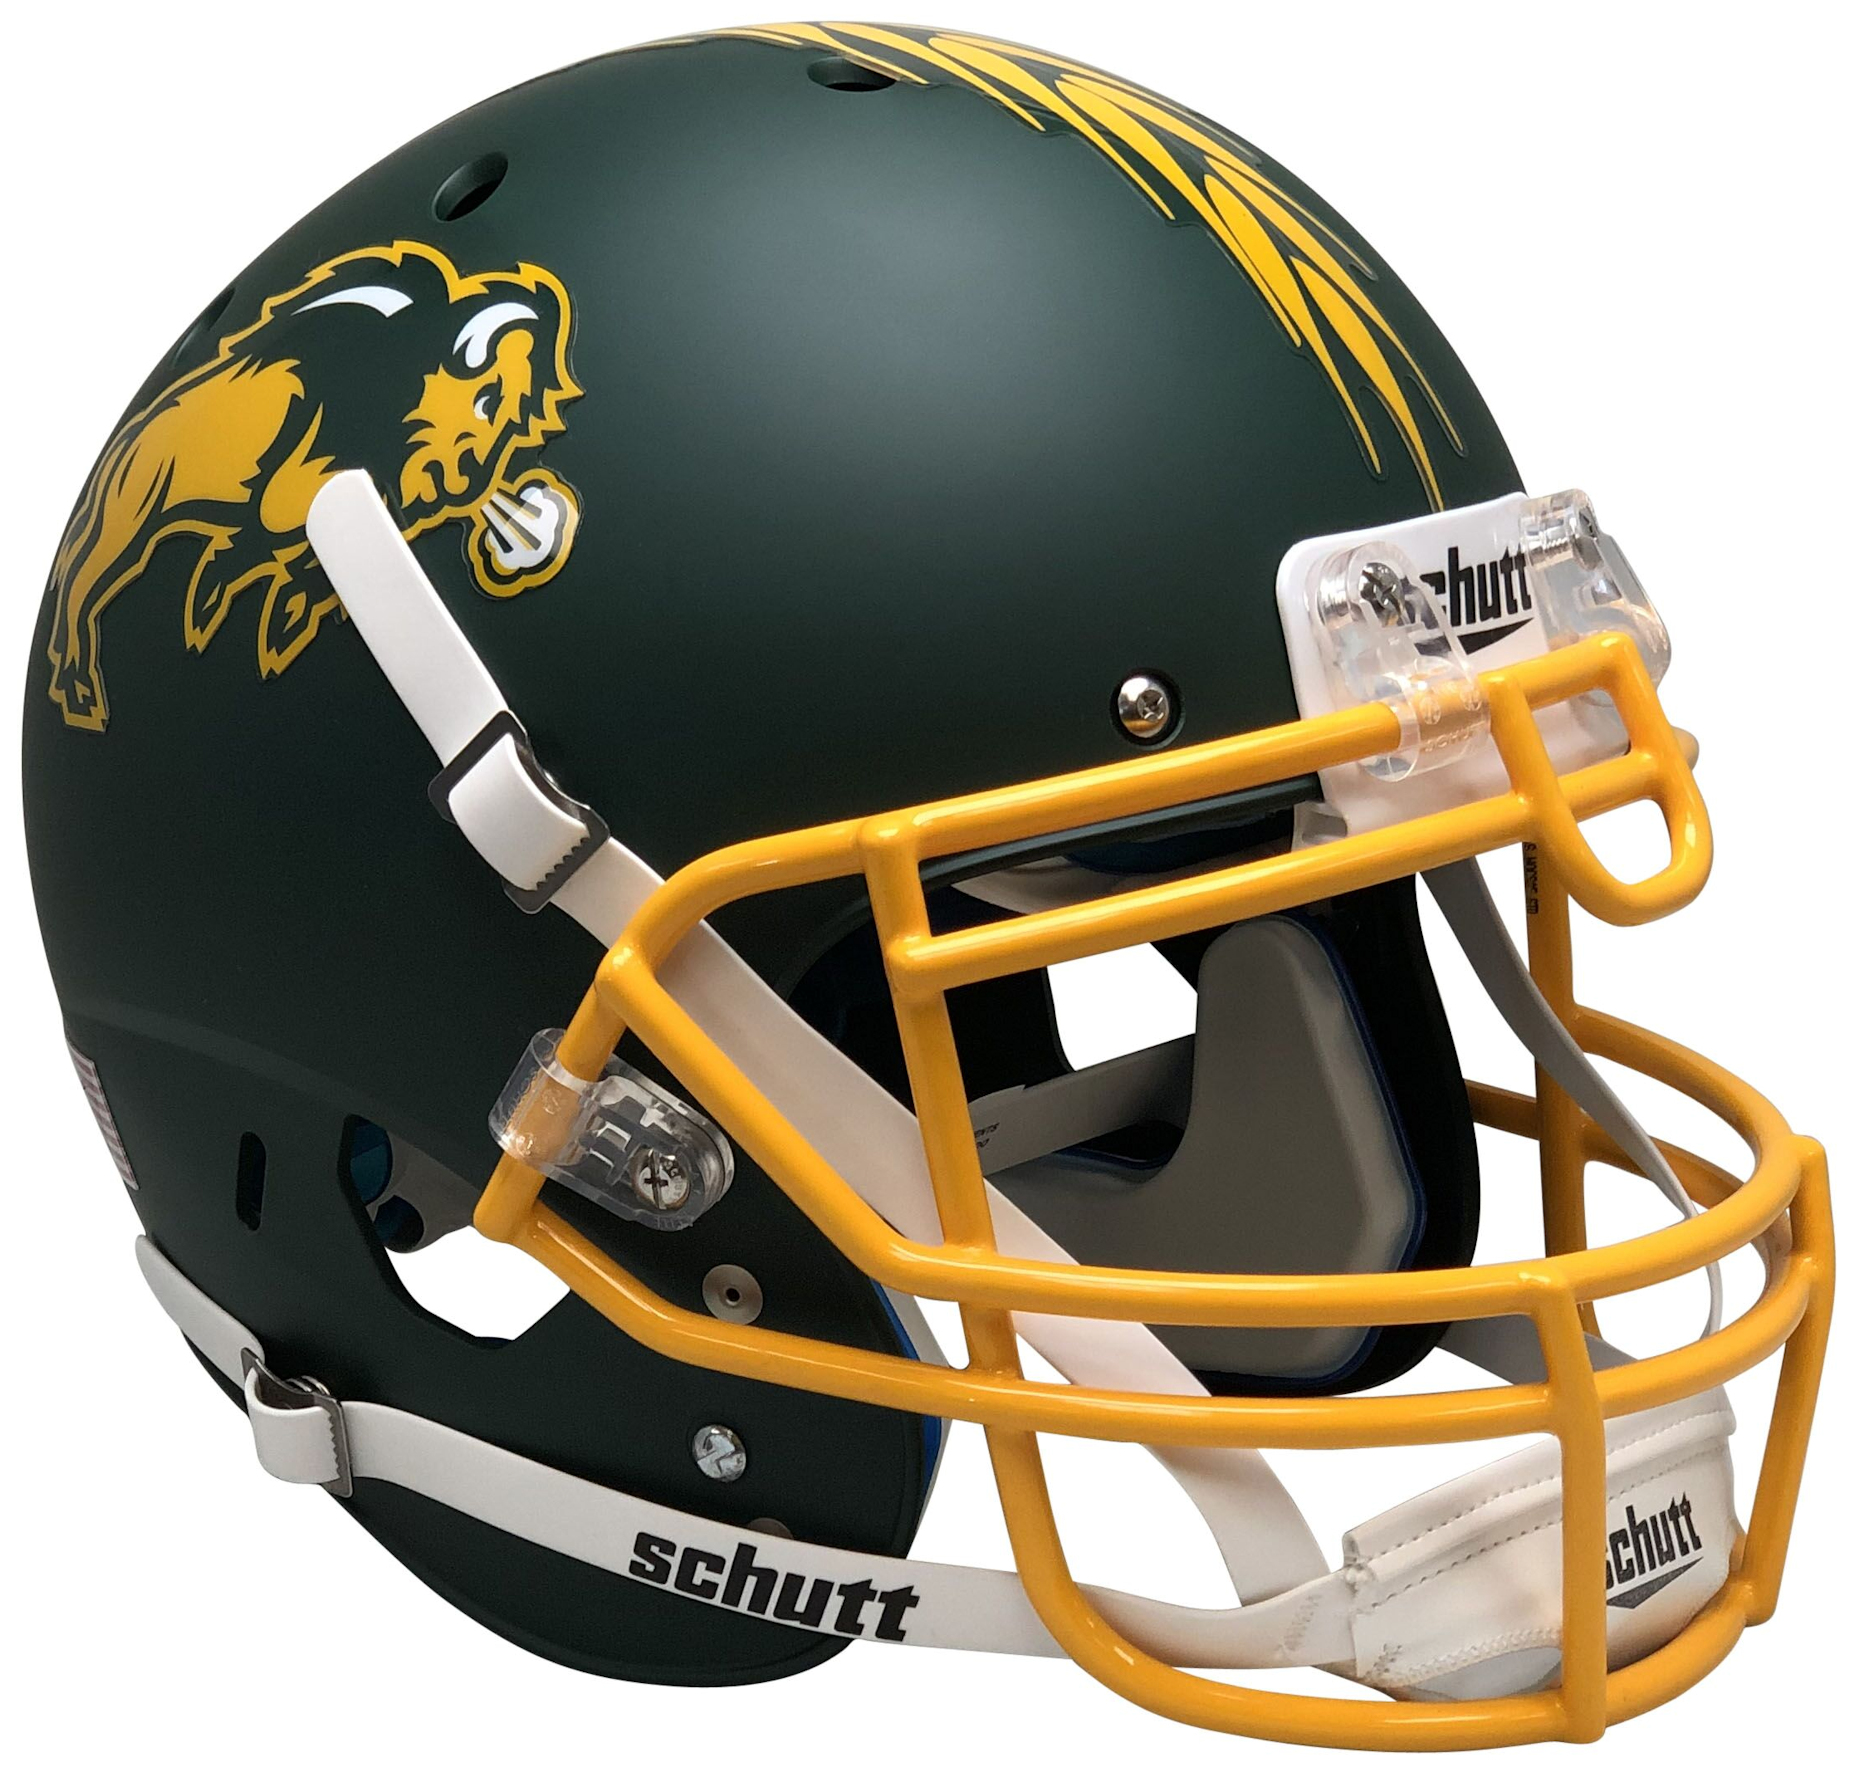 North Dakota State Bison Authentic College XP Football Helmet Schutt <B>Matte Green</B>